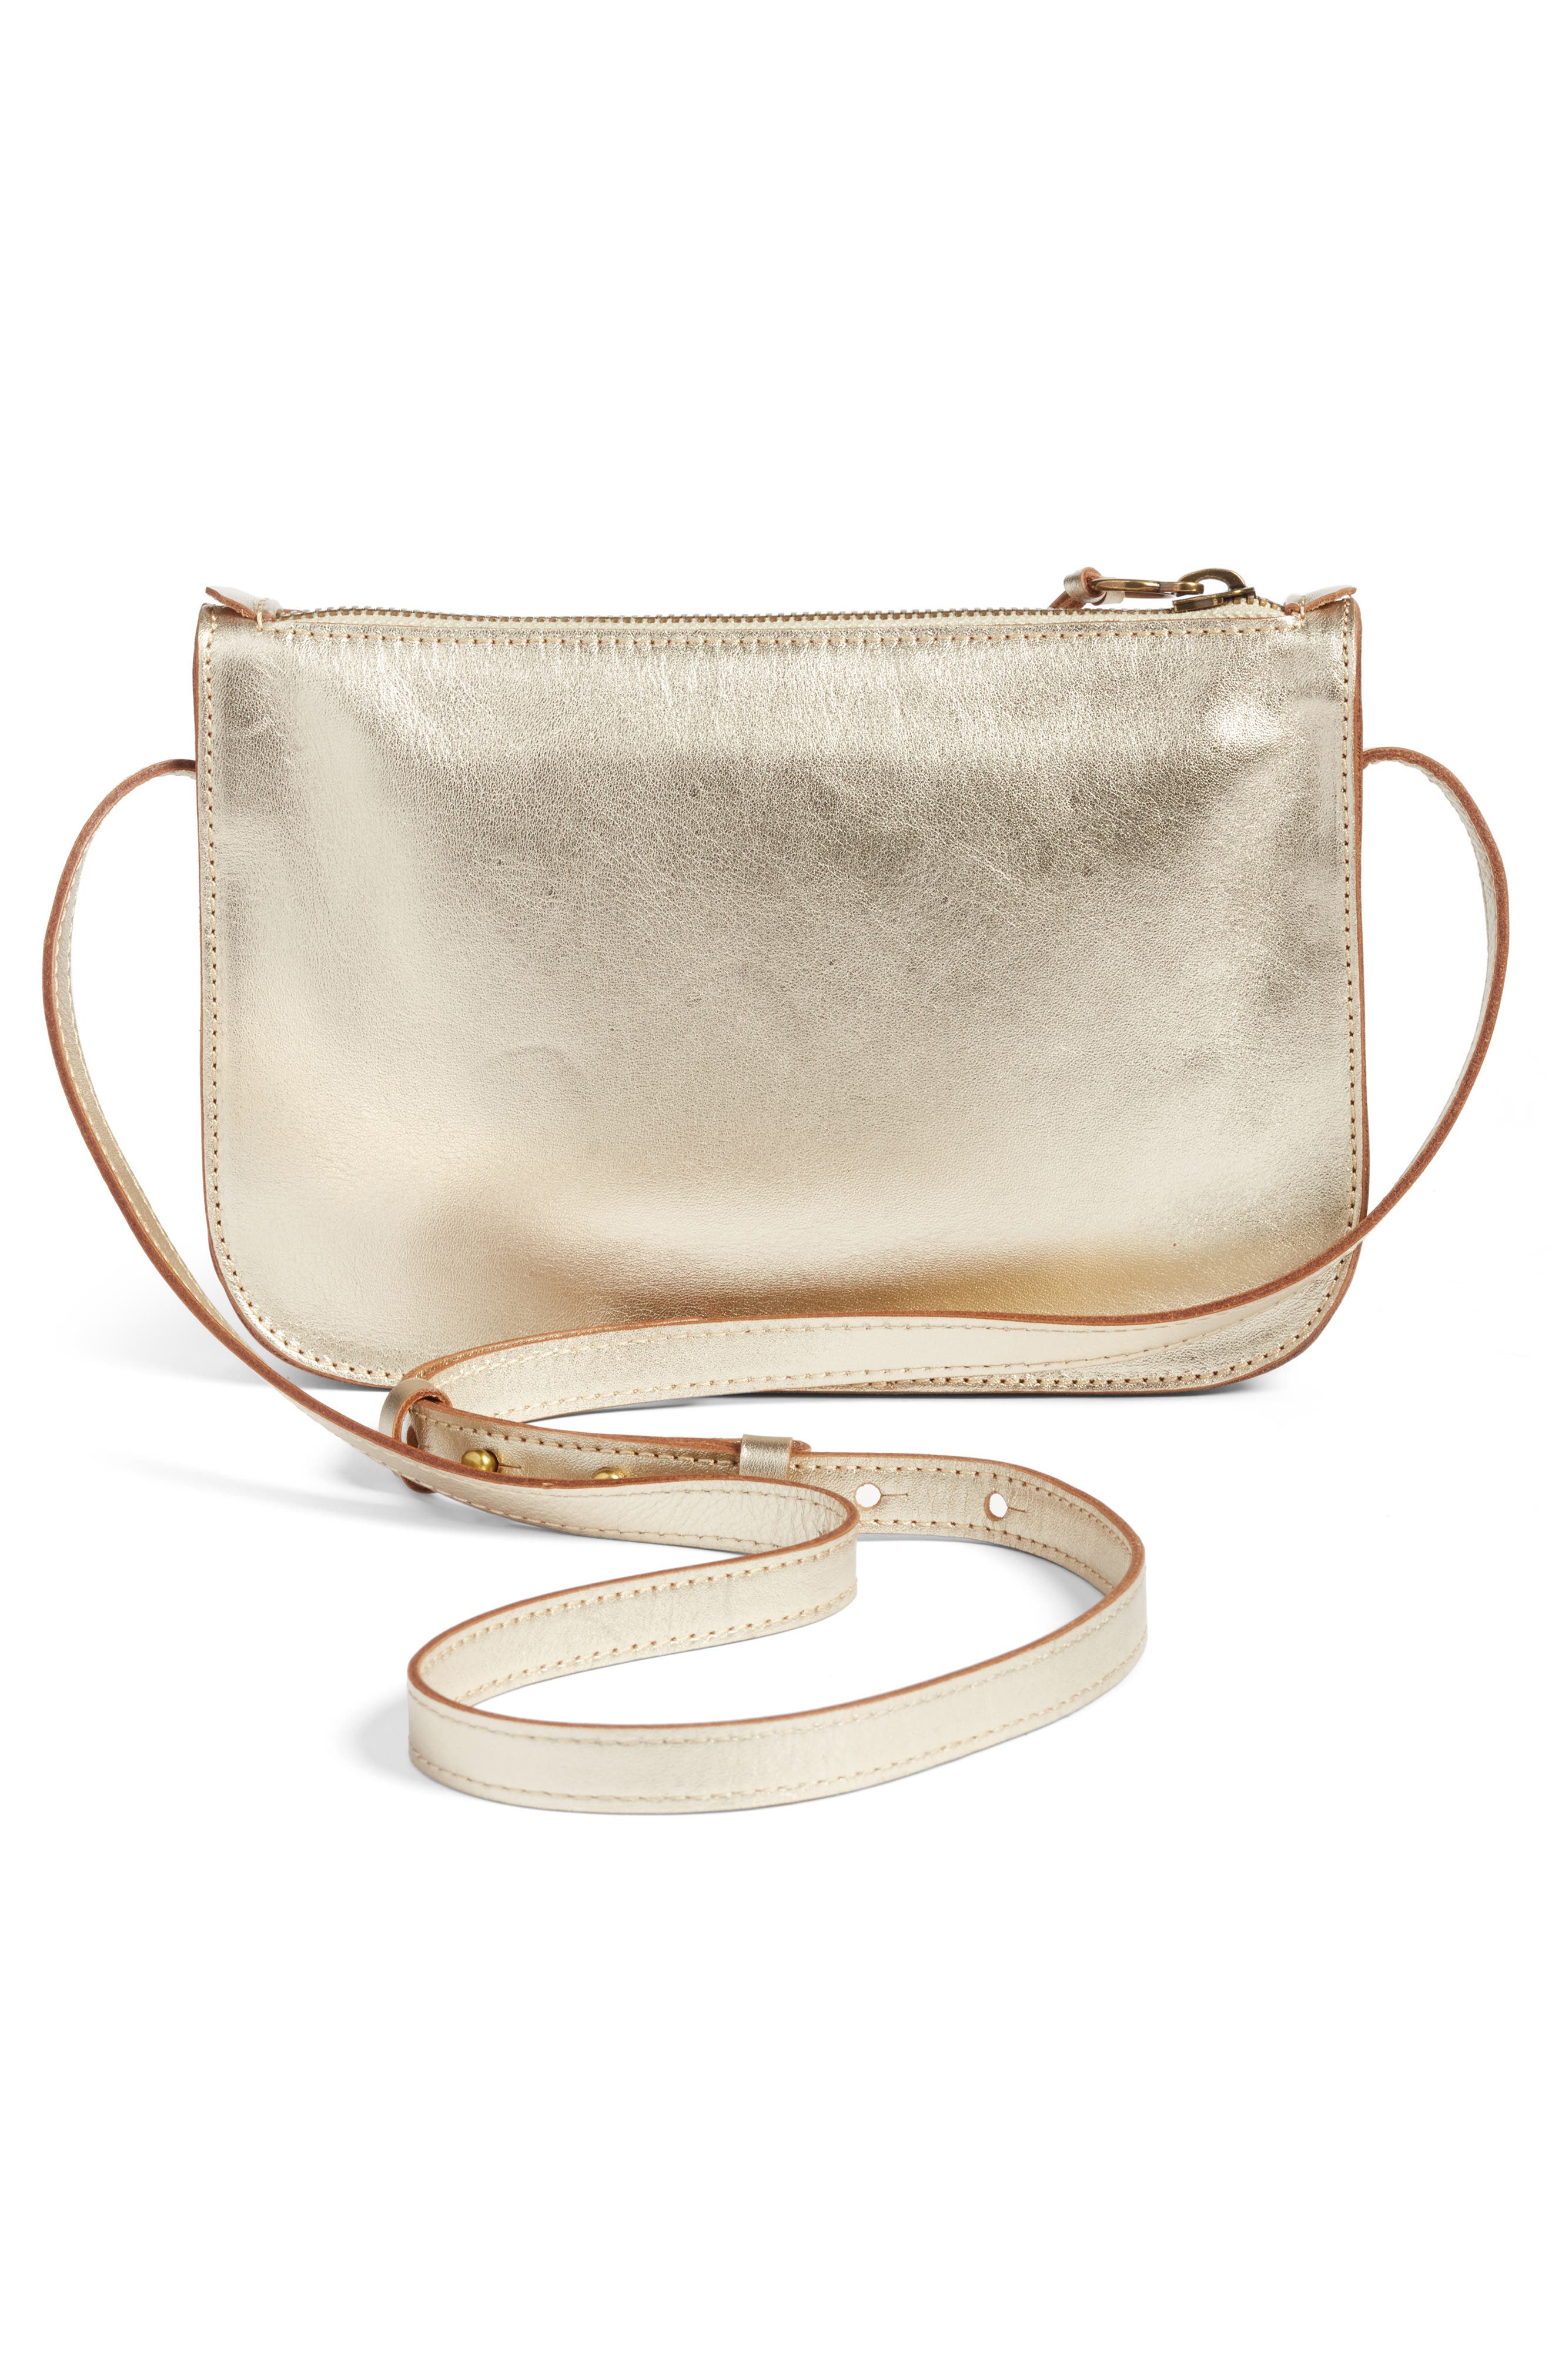 Leather Crossbody Bag,                             Alternate thumbnail 3, color,                             710